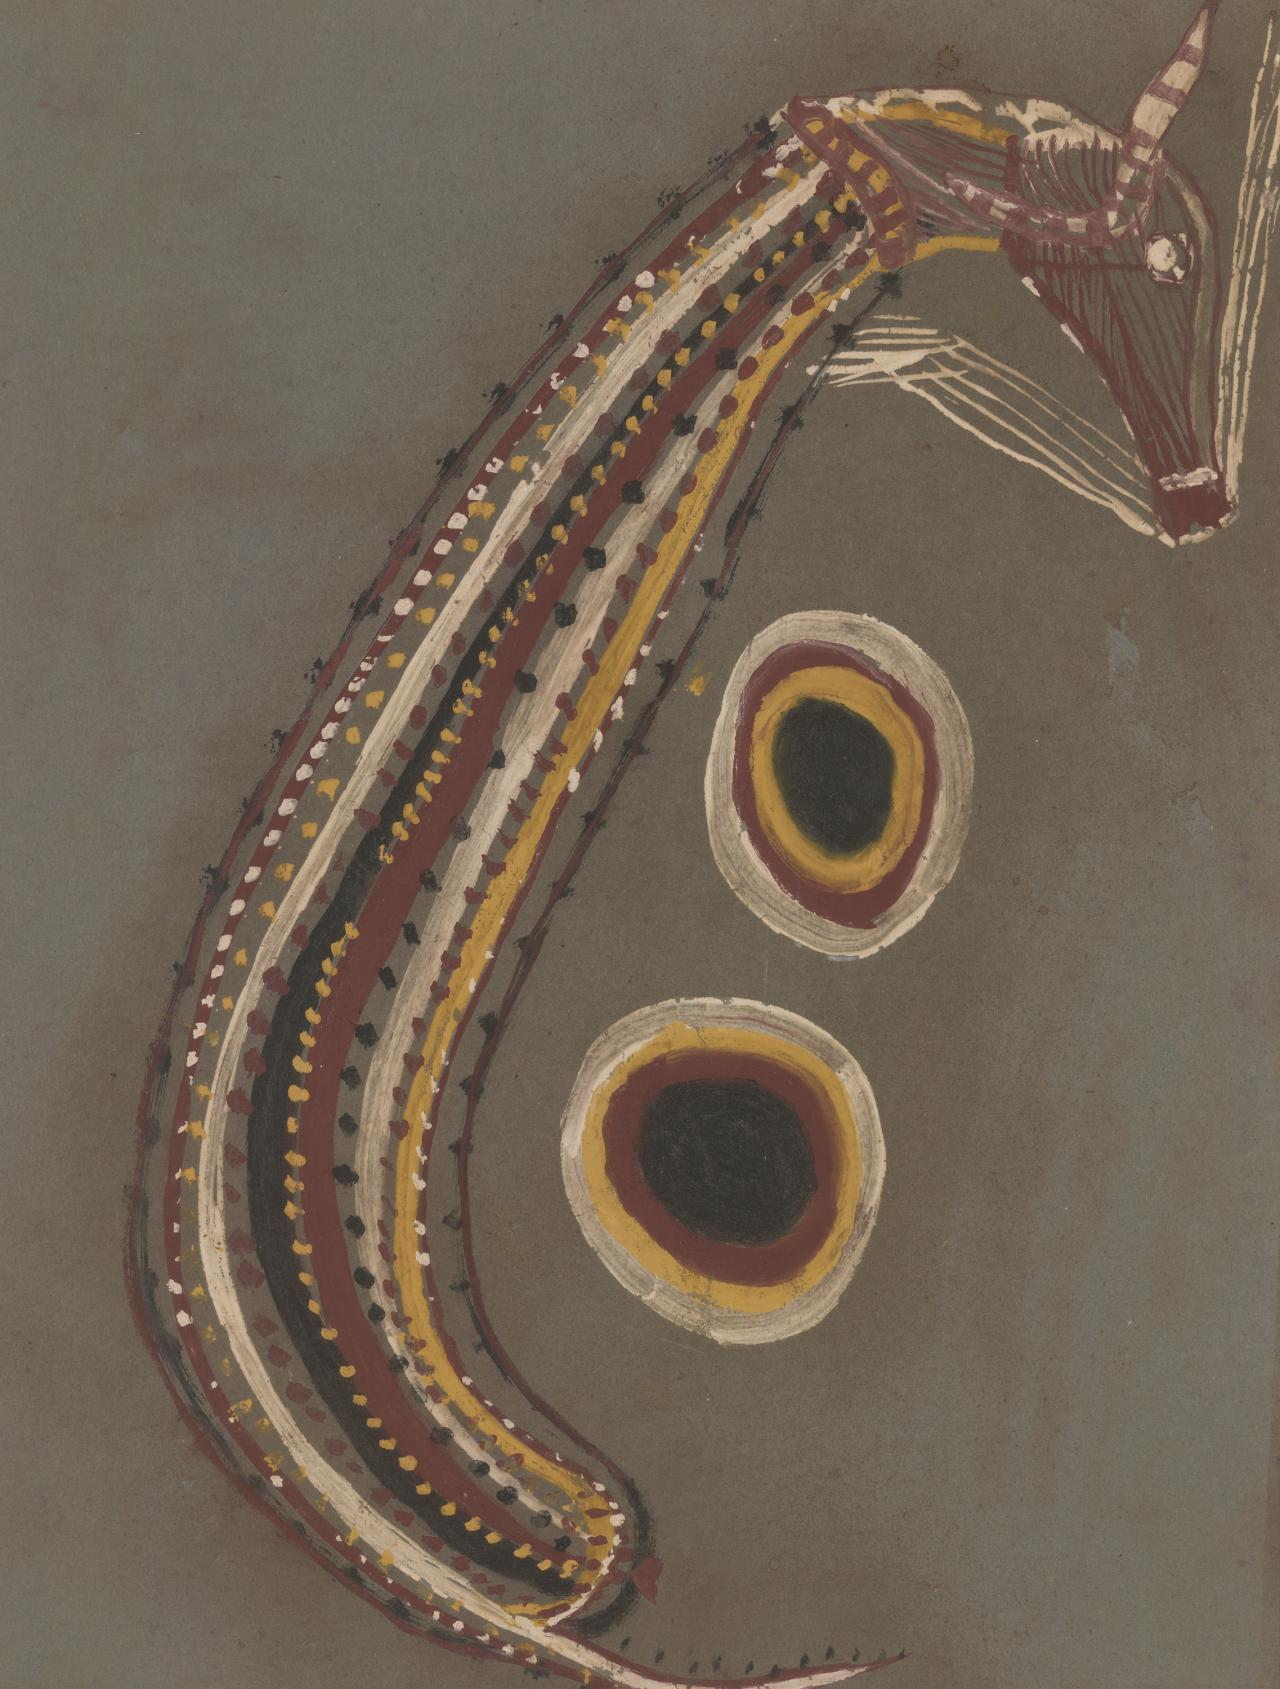 Ngalyod, the Rainbow Serpent